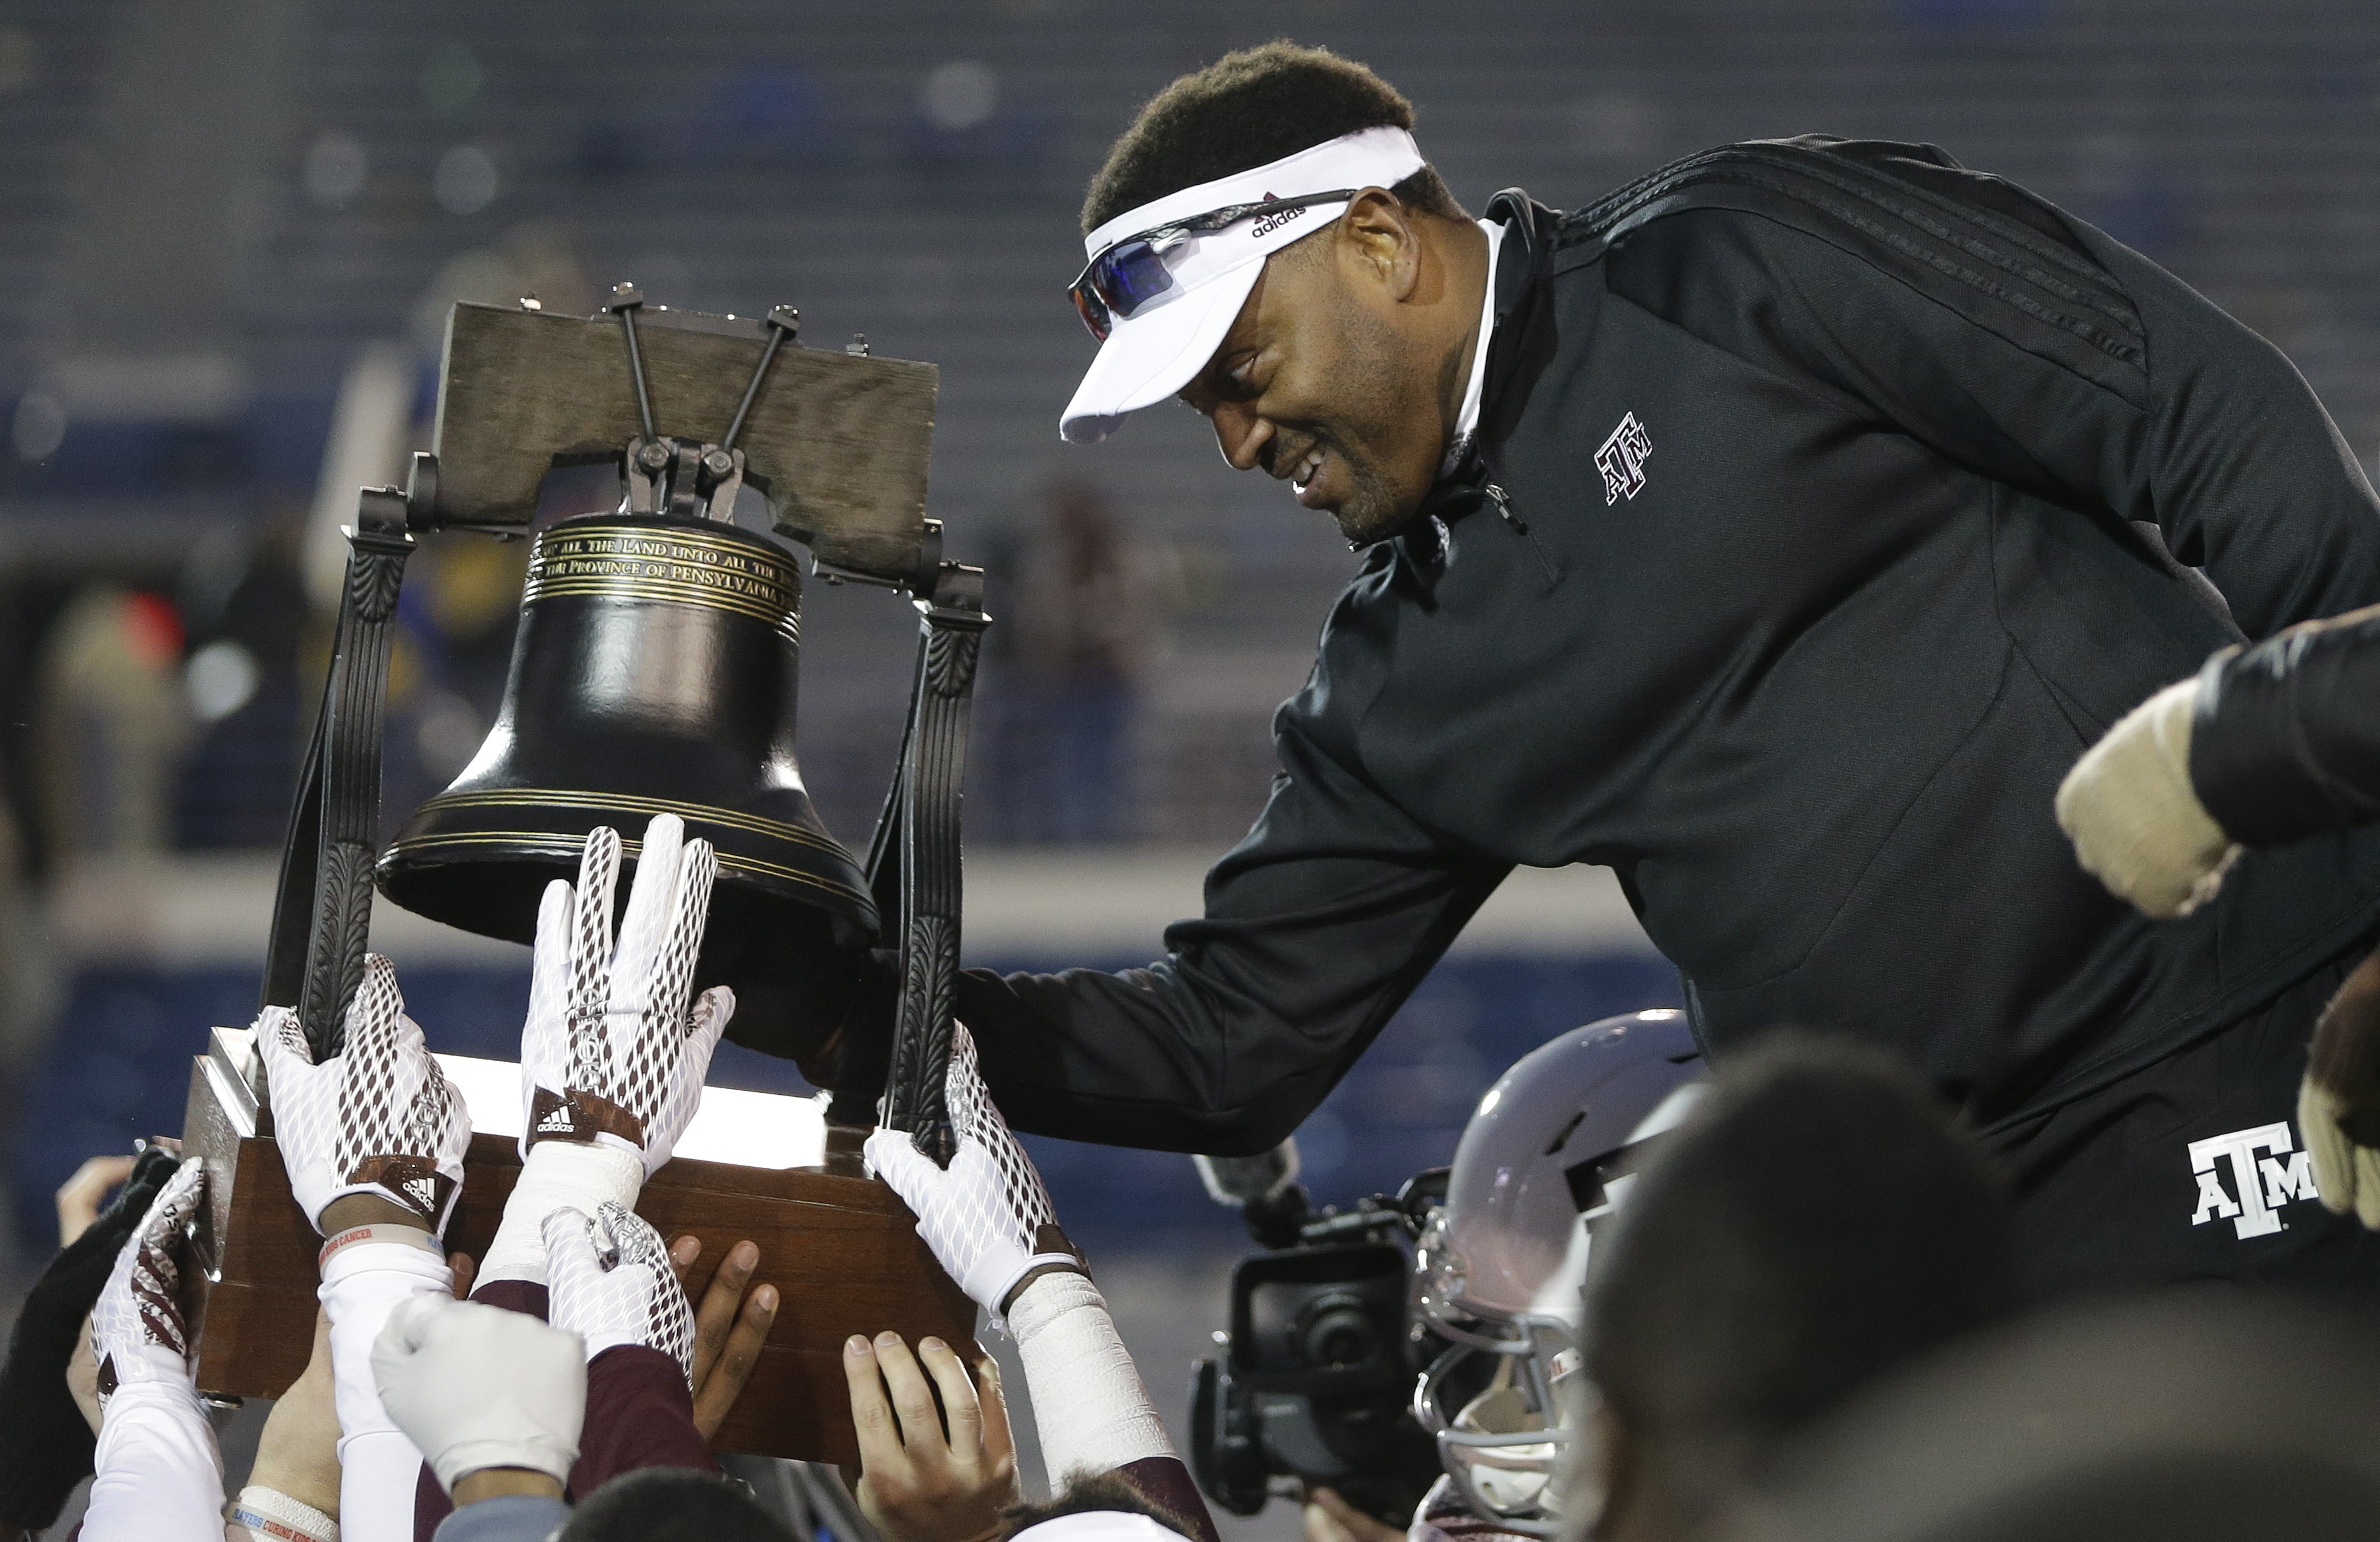 Texas A&M head coach Kevin Sumlin rings the Liberty Bell trophy after beating West Virginia in the Liberty Bowl NCAA college football game Monday, Dec. 29, 2014, in Memphis, Tenn. Texas A&M won 45-37. (AP Photo/Mark Humphrey)